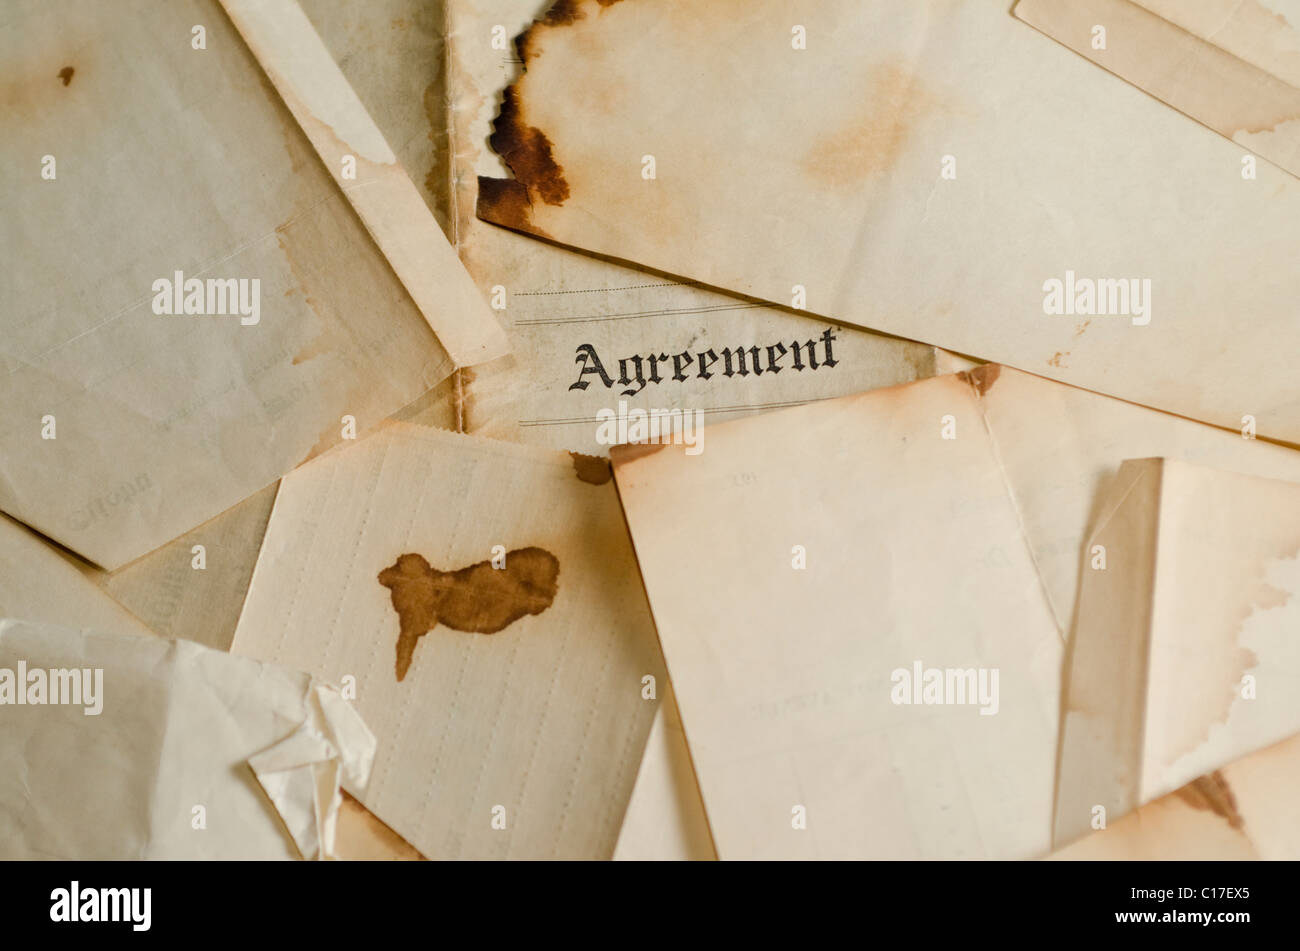 burned old legal document - Stock Image